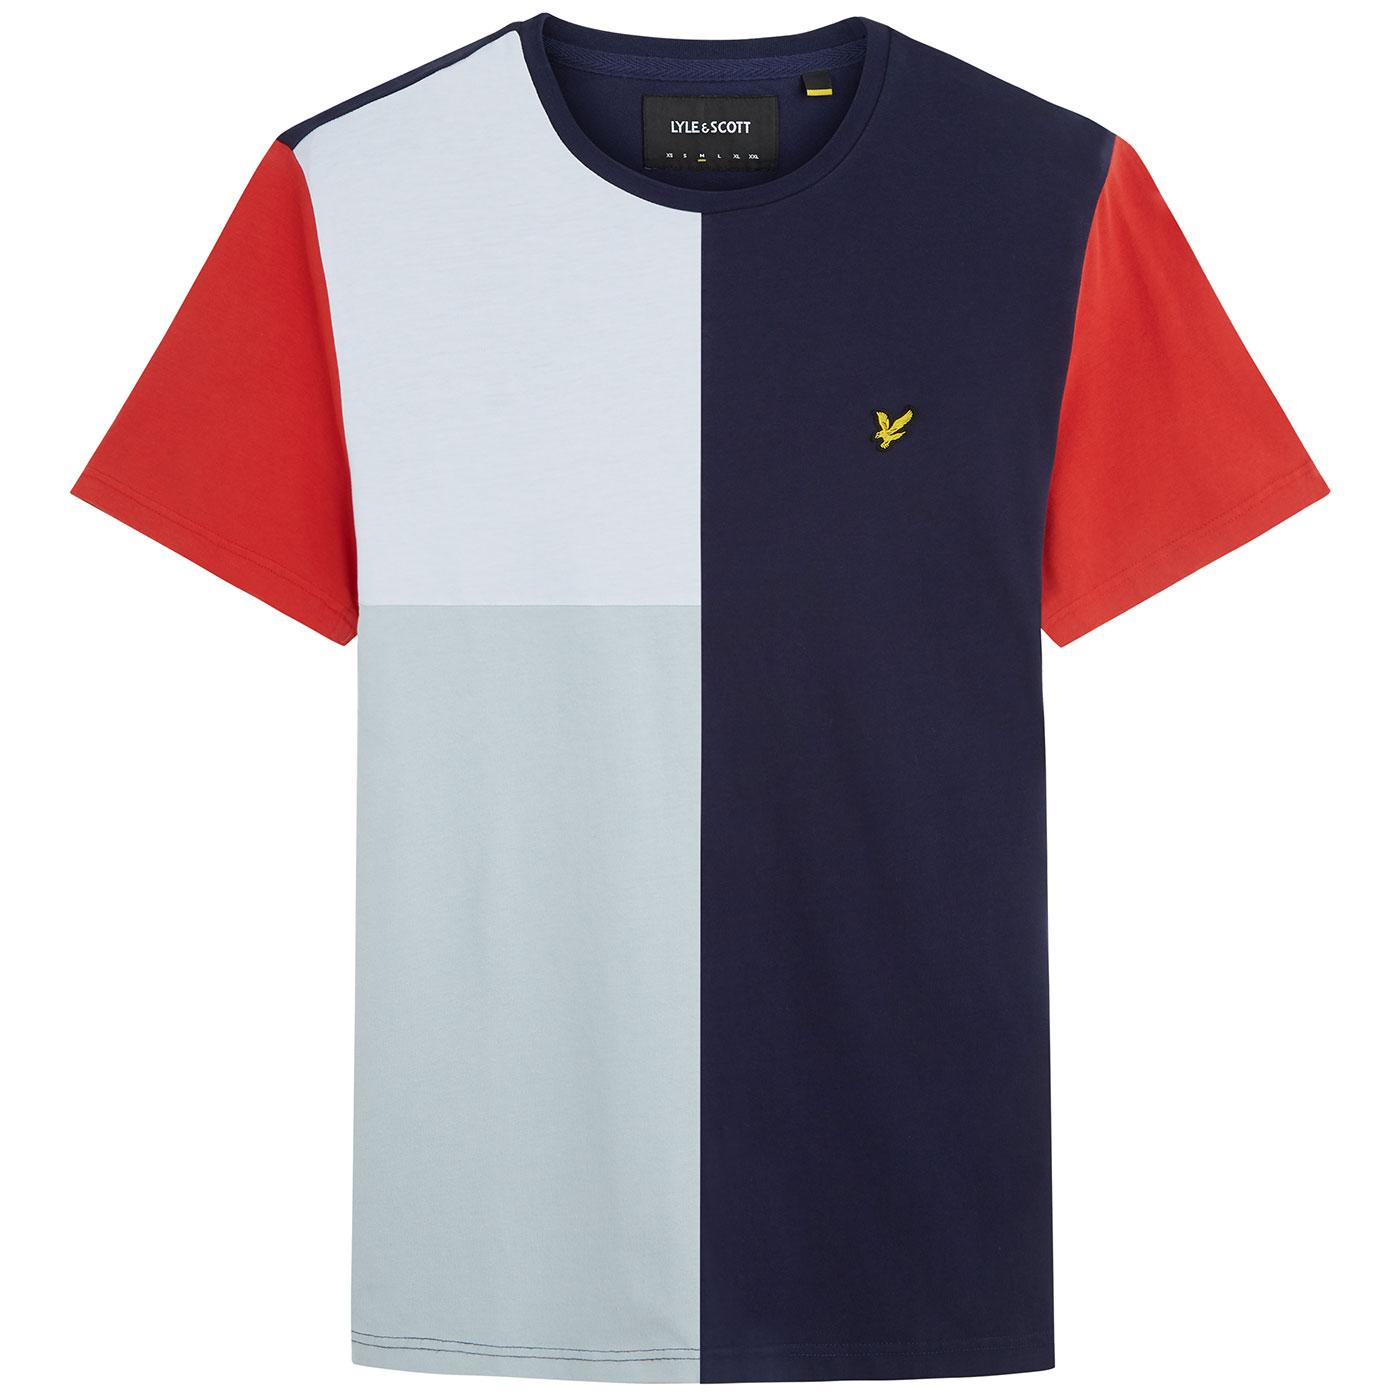 LYLE & SCOTT Men's Retro Colour Block T-shirt NAVY